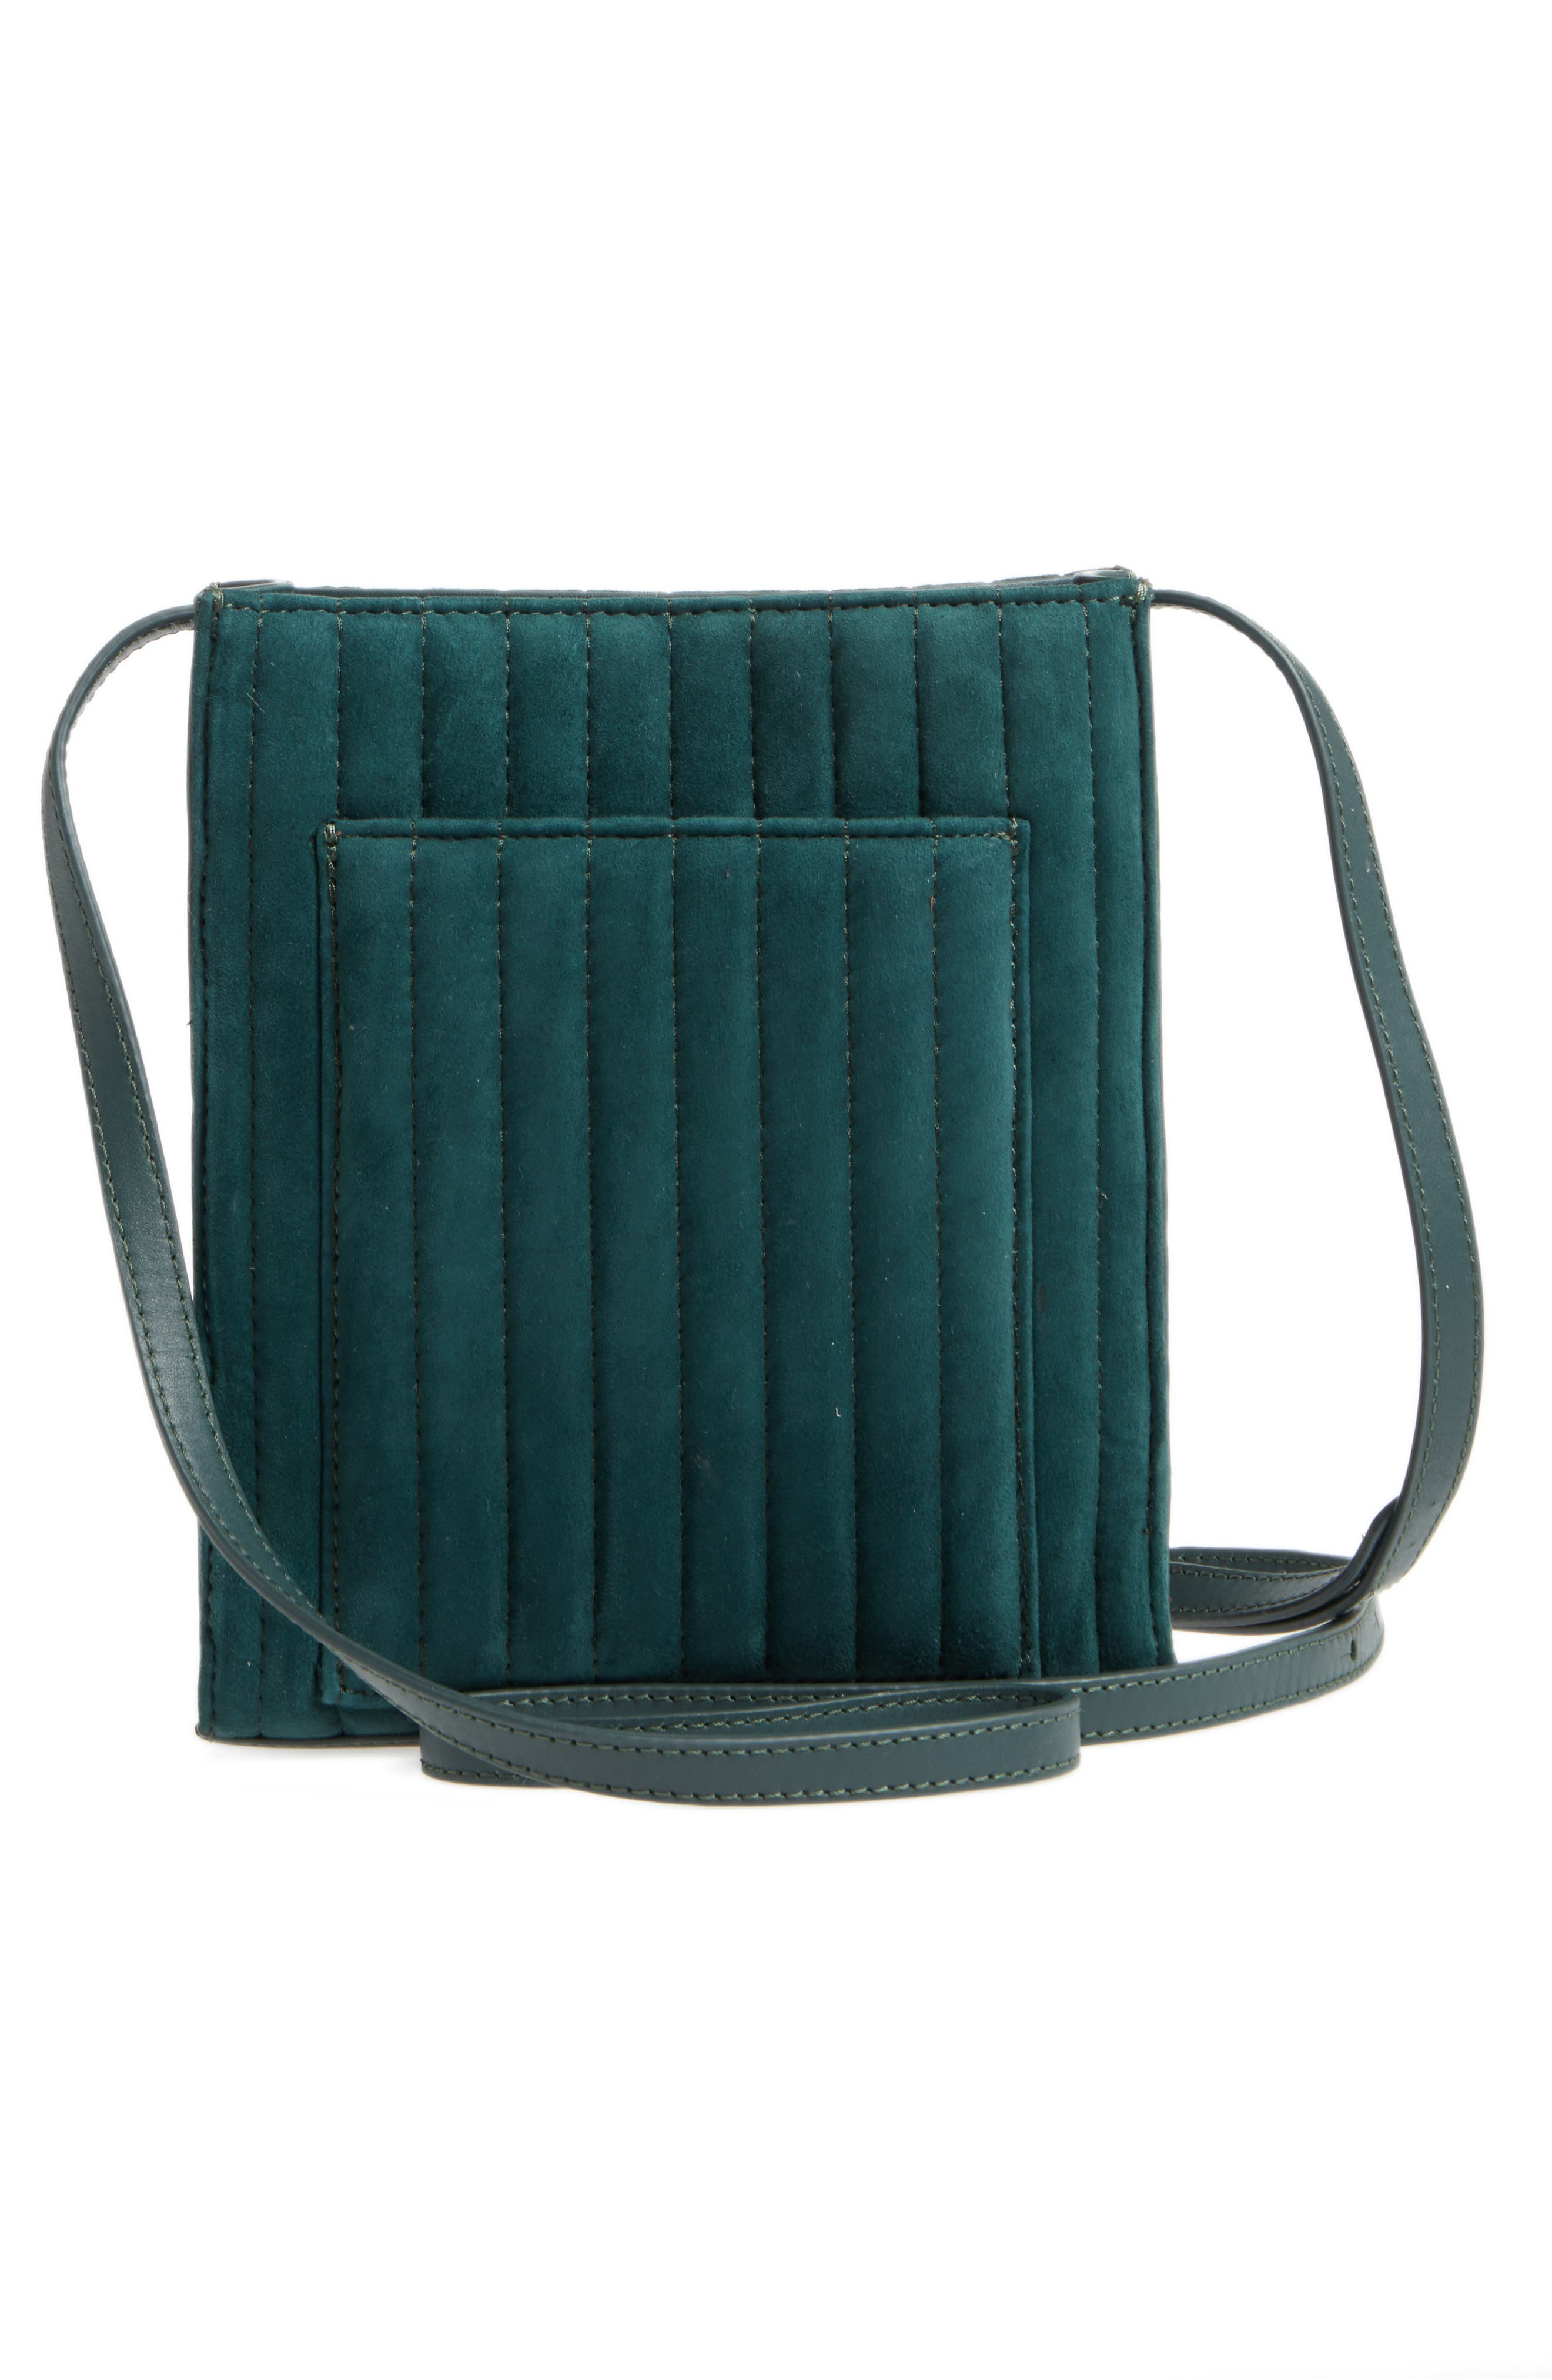 Camden Leather Crossbody Bag,                             Alternate thumbnail 3, color,                             Ink Green Quilted